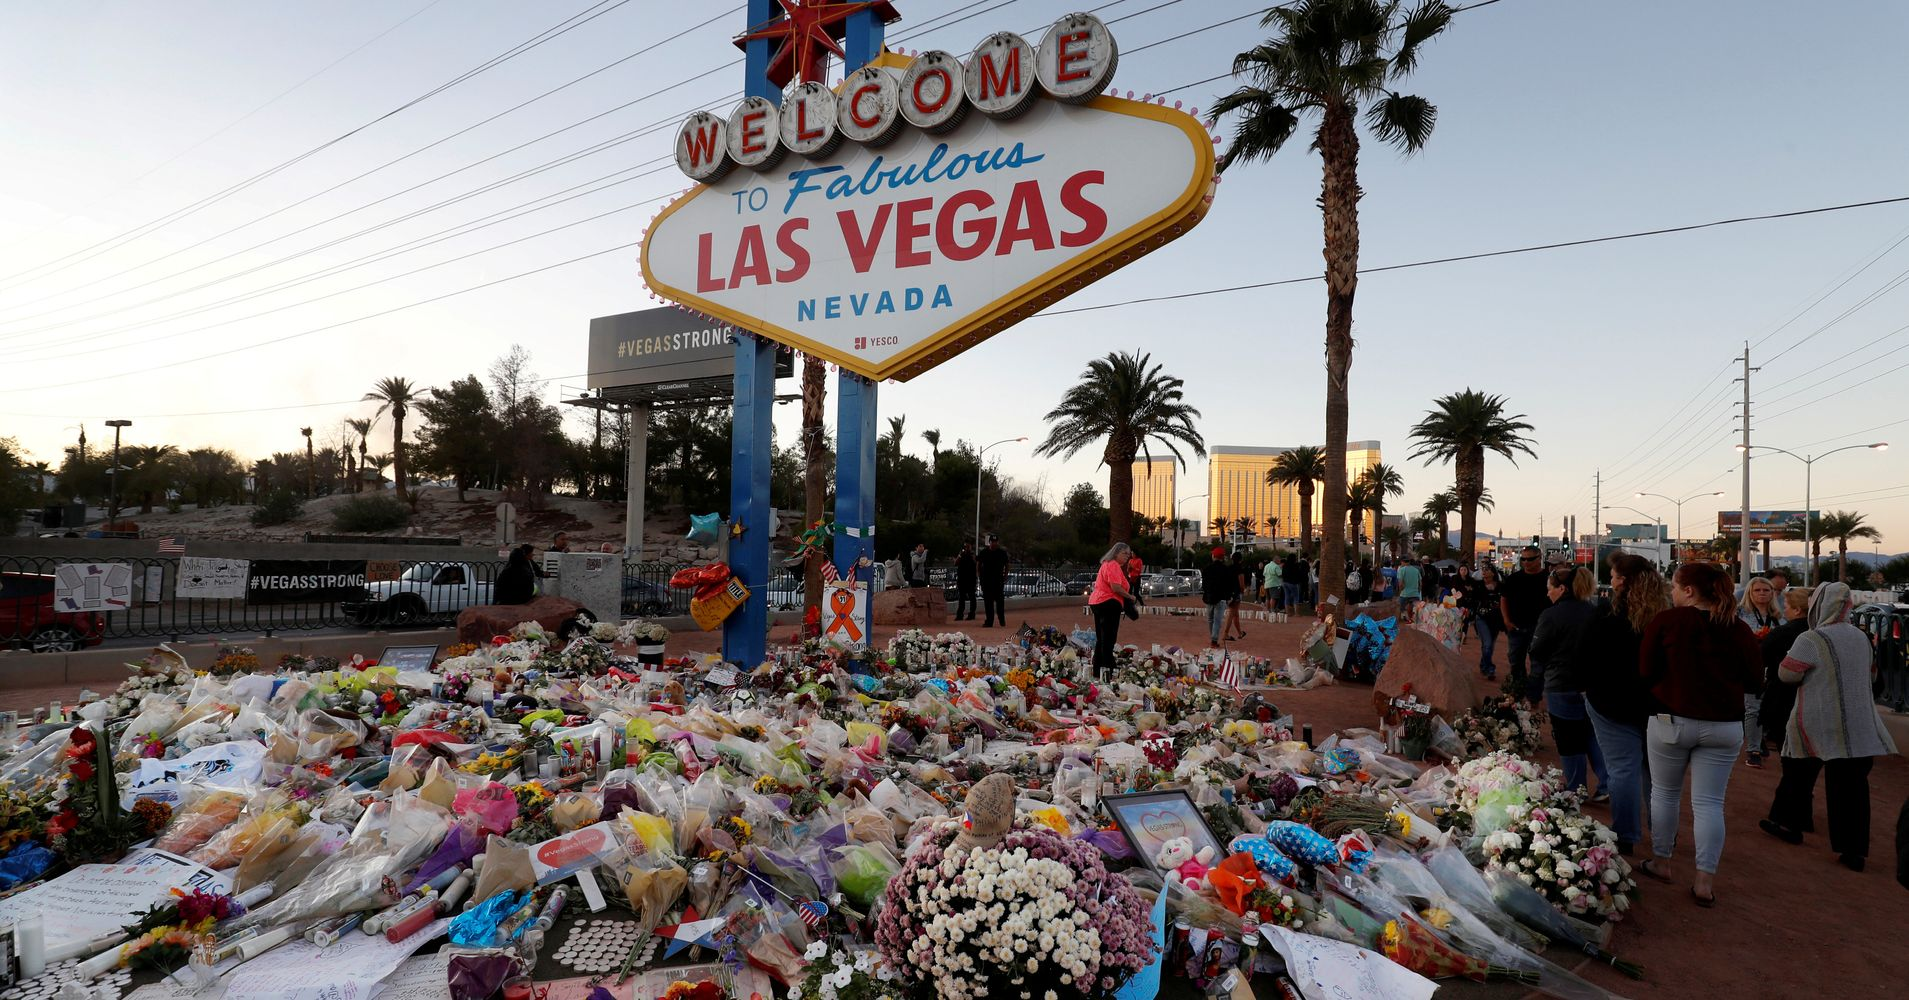 14 More Lawsuits Filed In Aftermath Of Las Vegas Shooting thumbnail